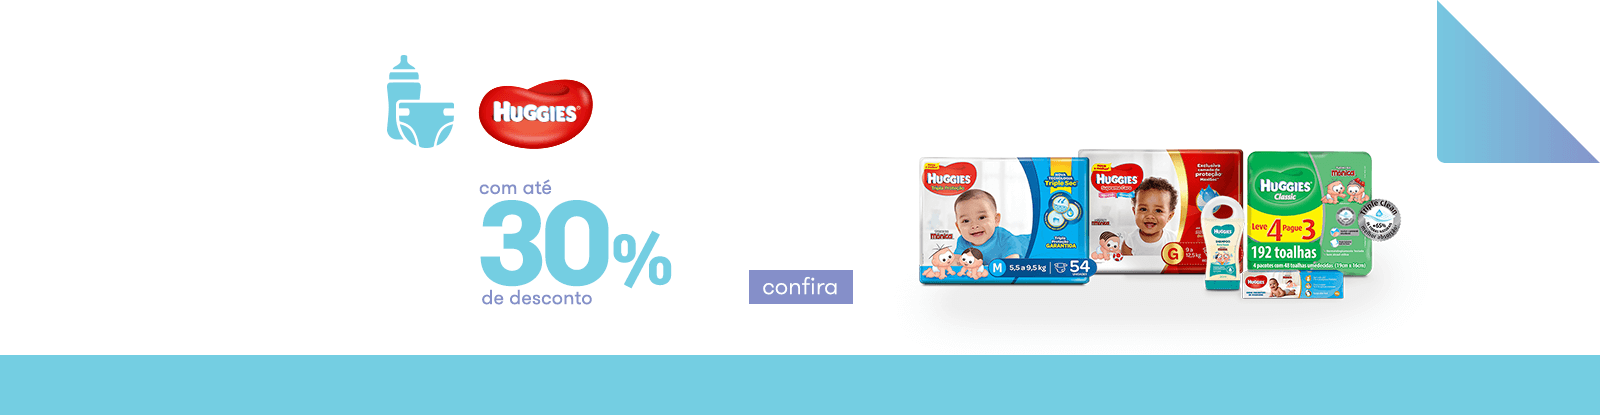 Huggies_ate_30%_off